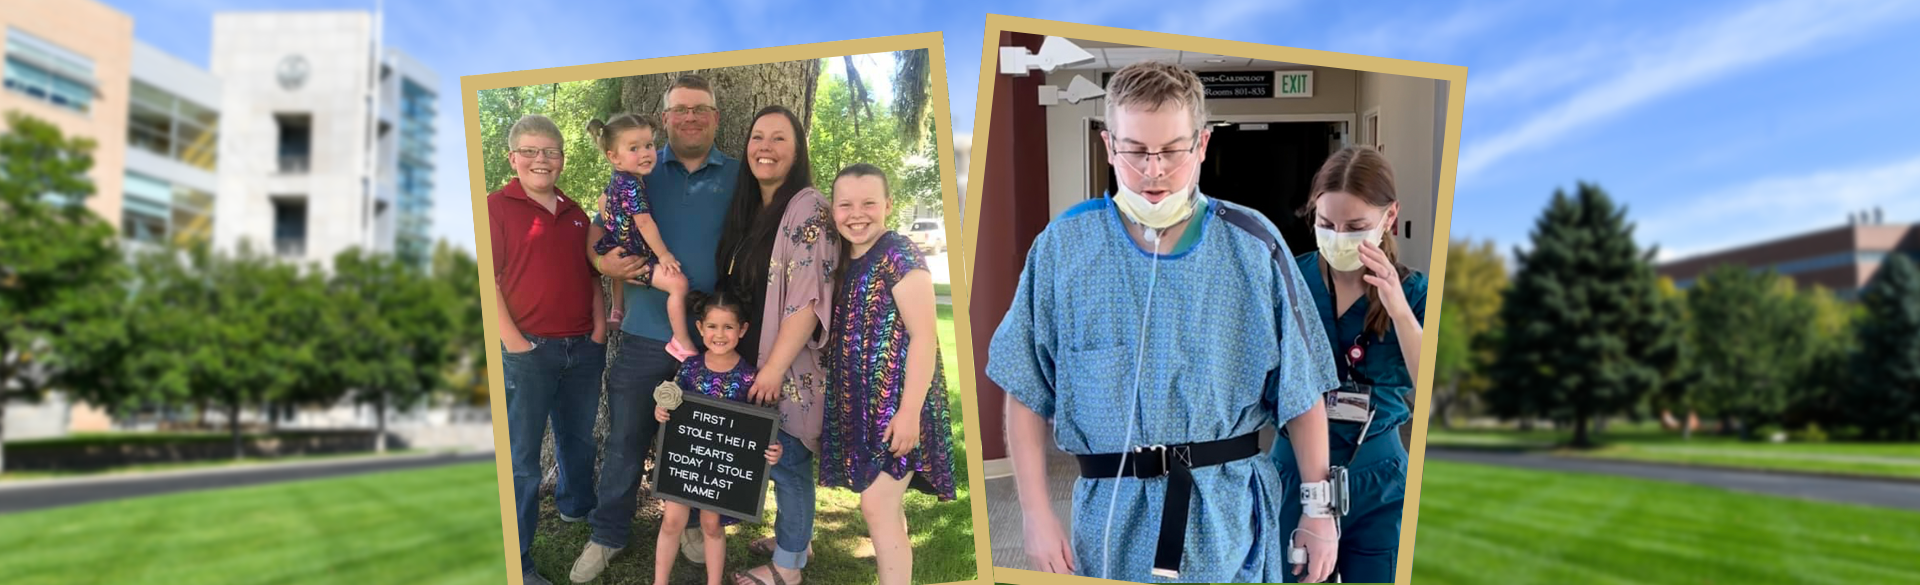 University of Colorado Surgeon Performs State's First COVID-19 Lung Transplant